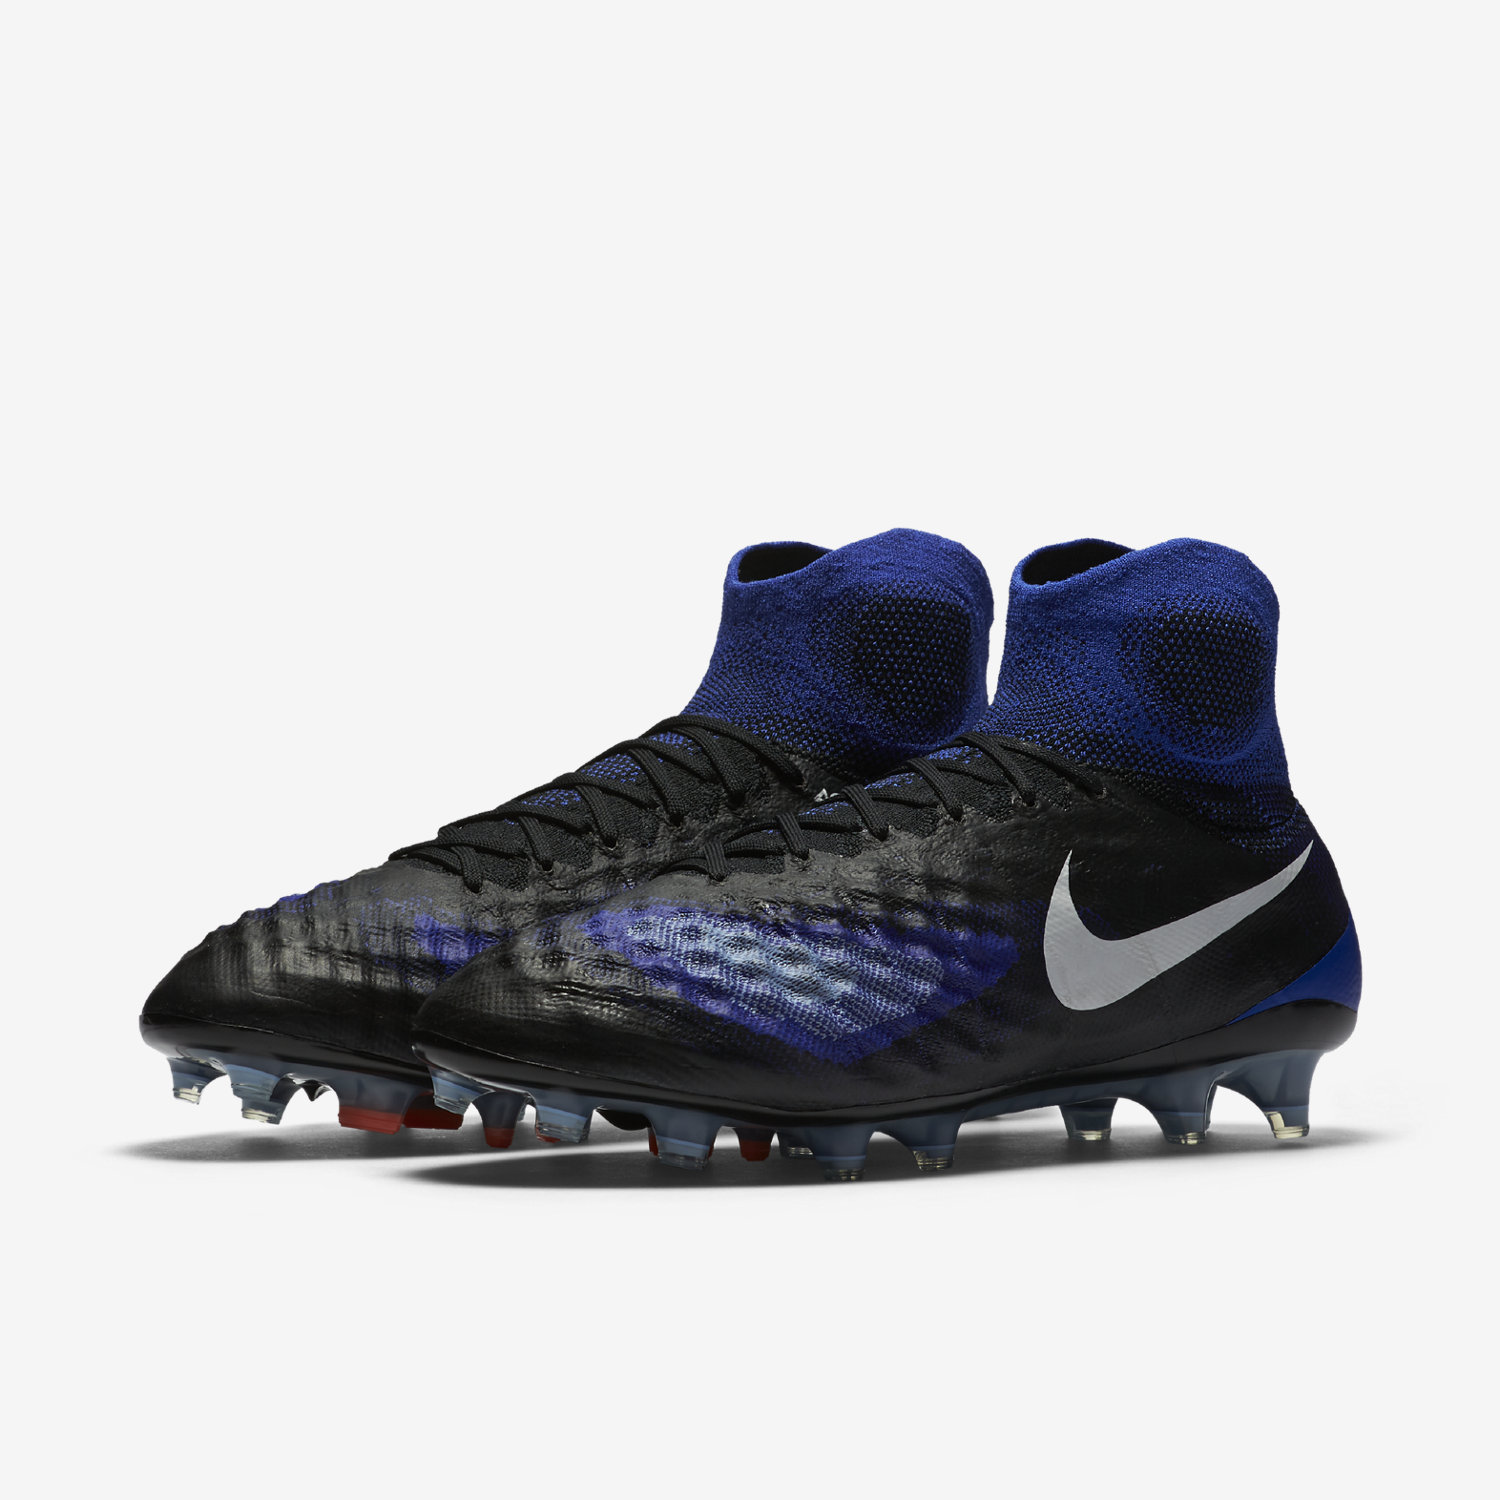 nike magista obra 2 fg purple